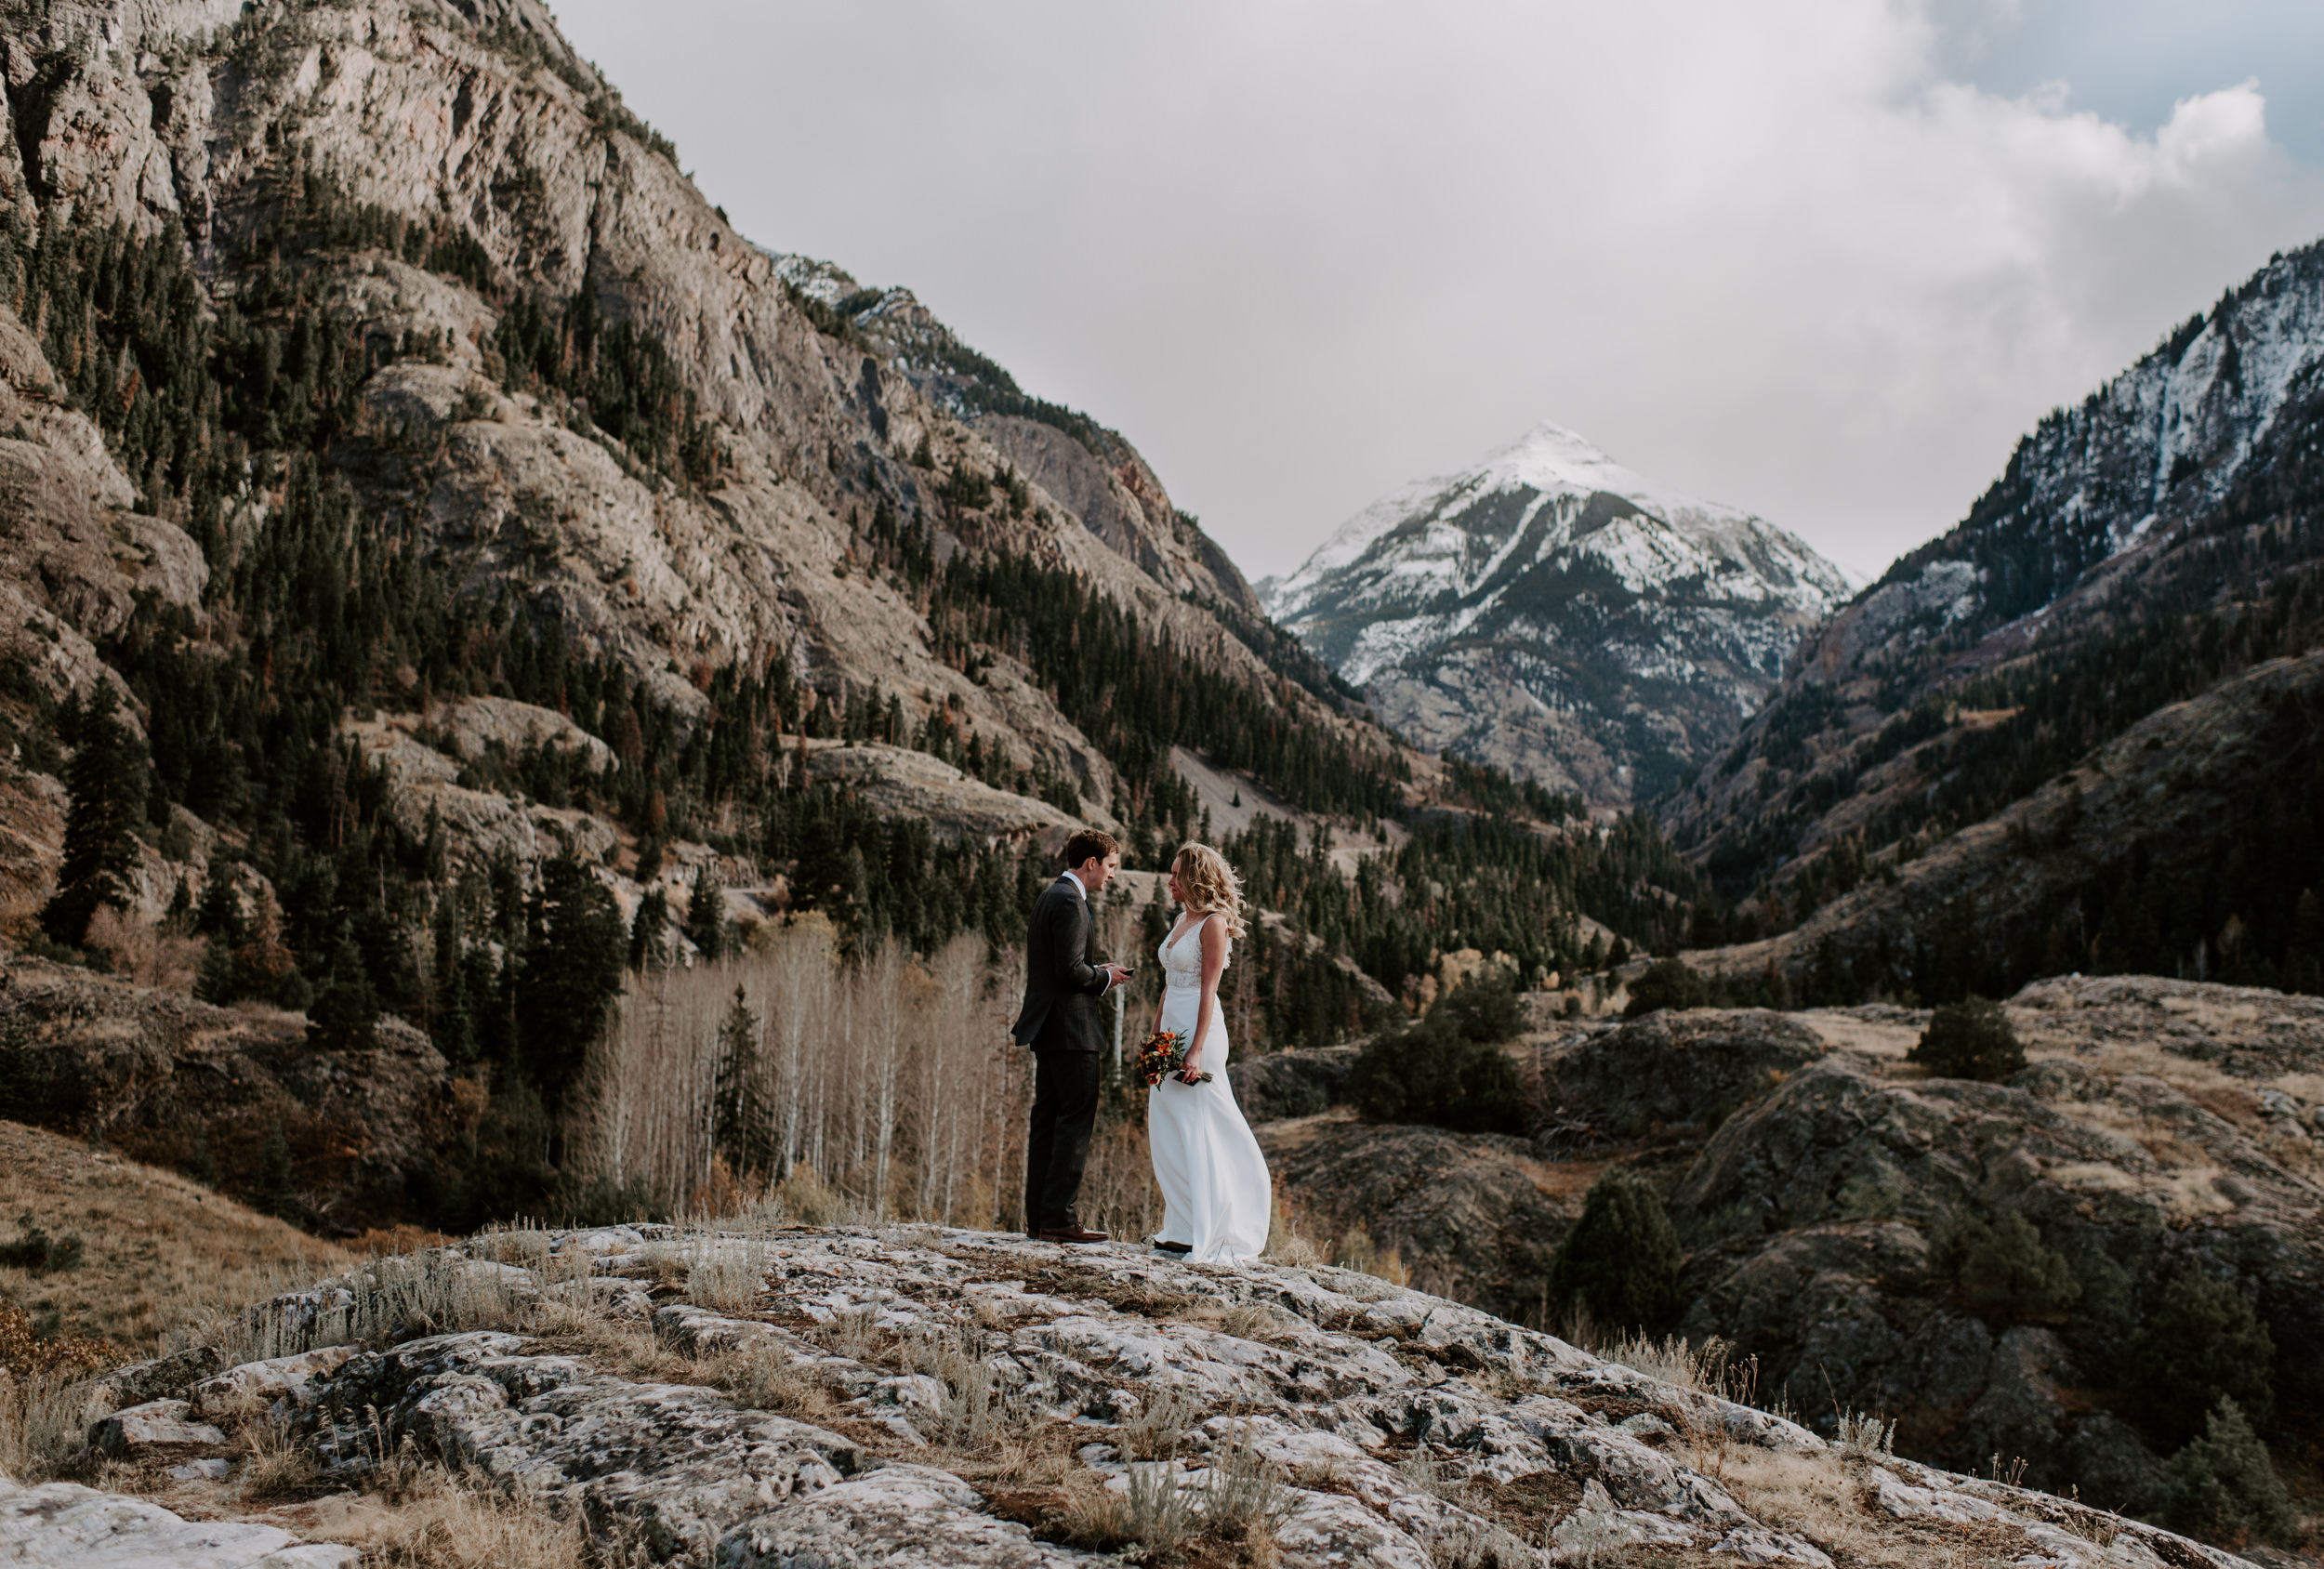 Ouray, Colorado wedding photographer. Intimate mountain ceremony in Ouray.